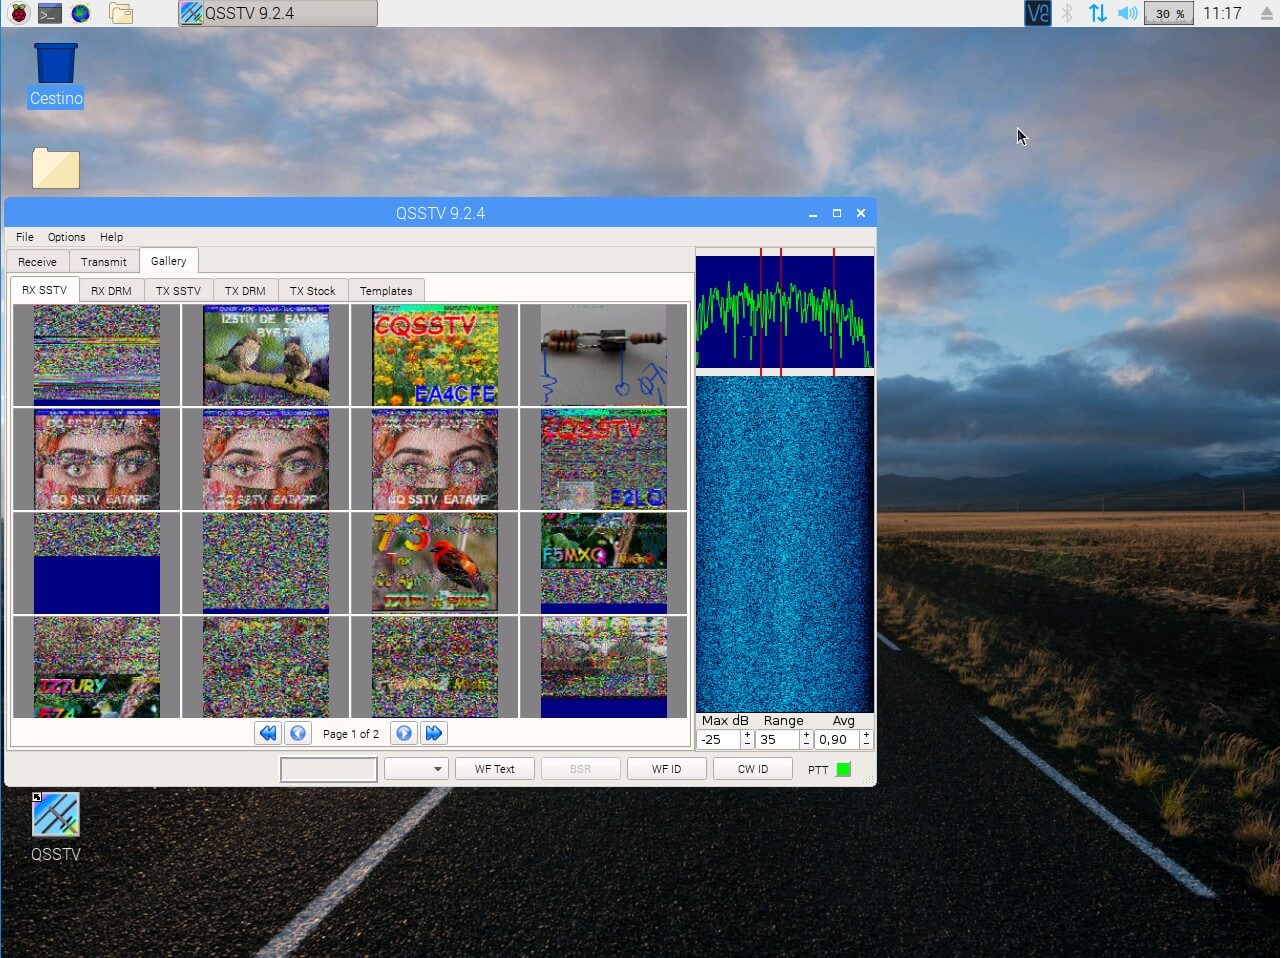 QSSTV Running on a Raspberry Pi with RTL-SDR V3 Radio